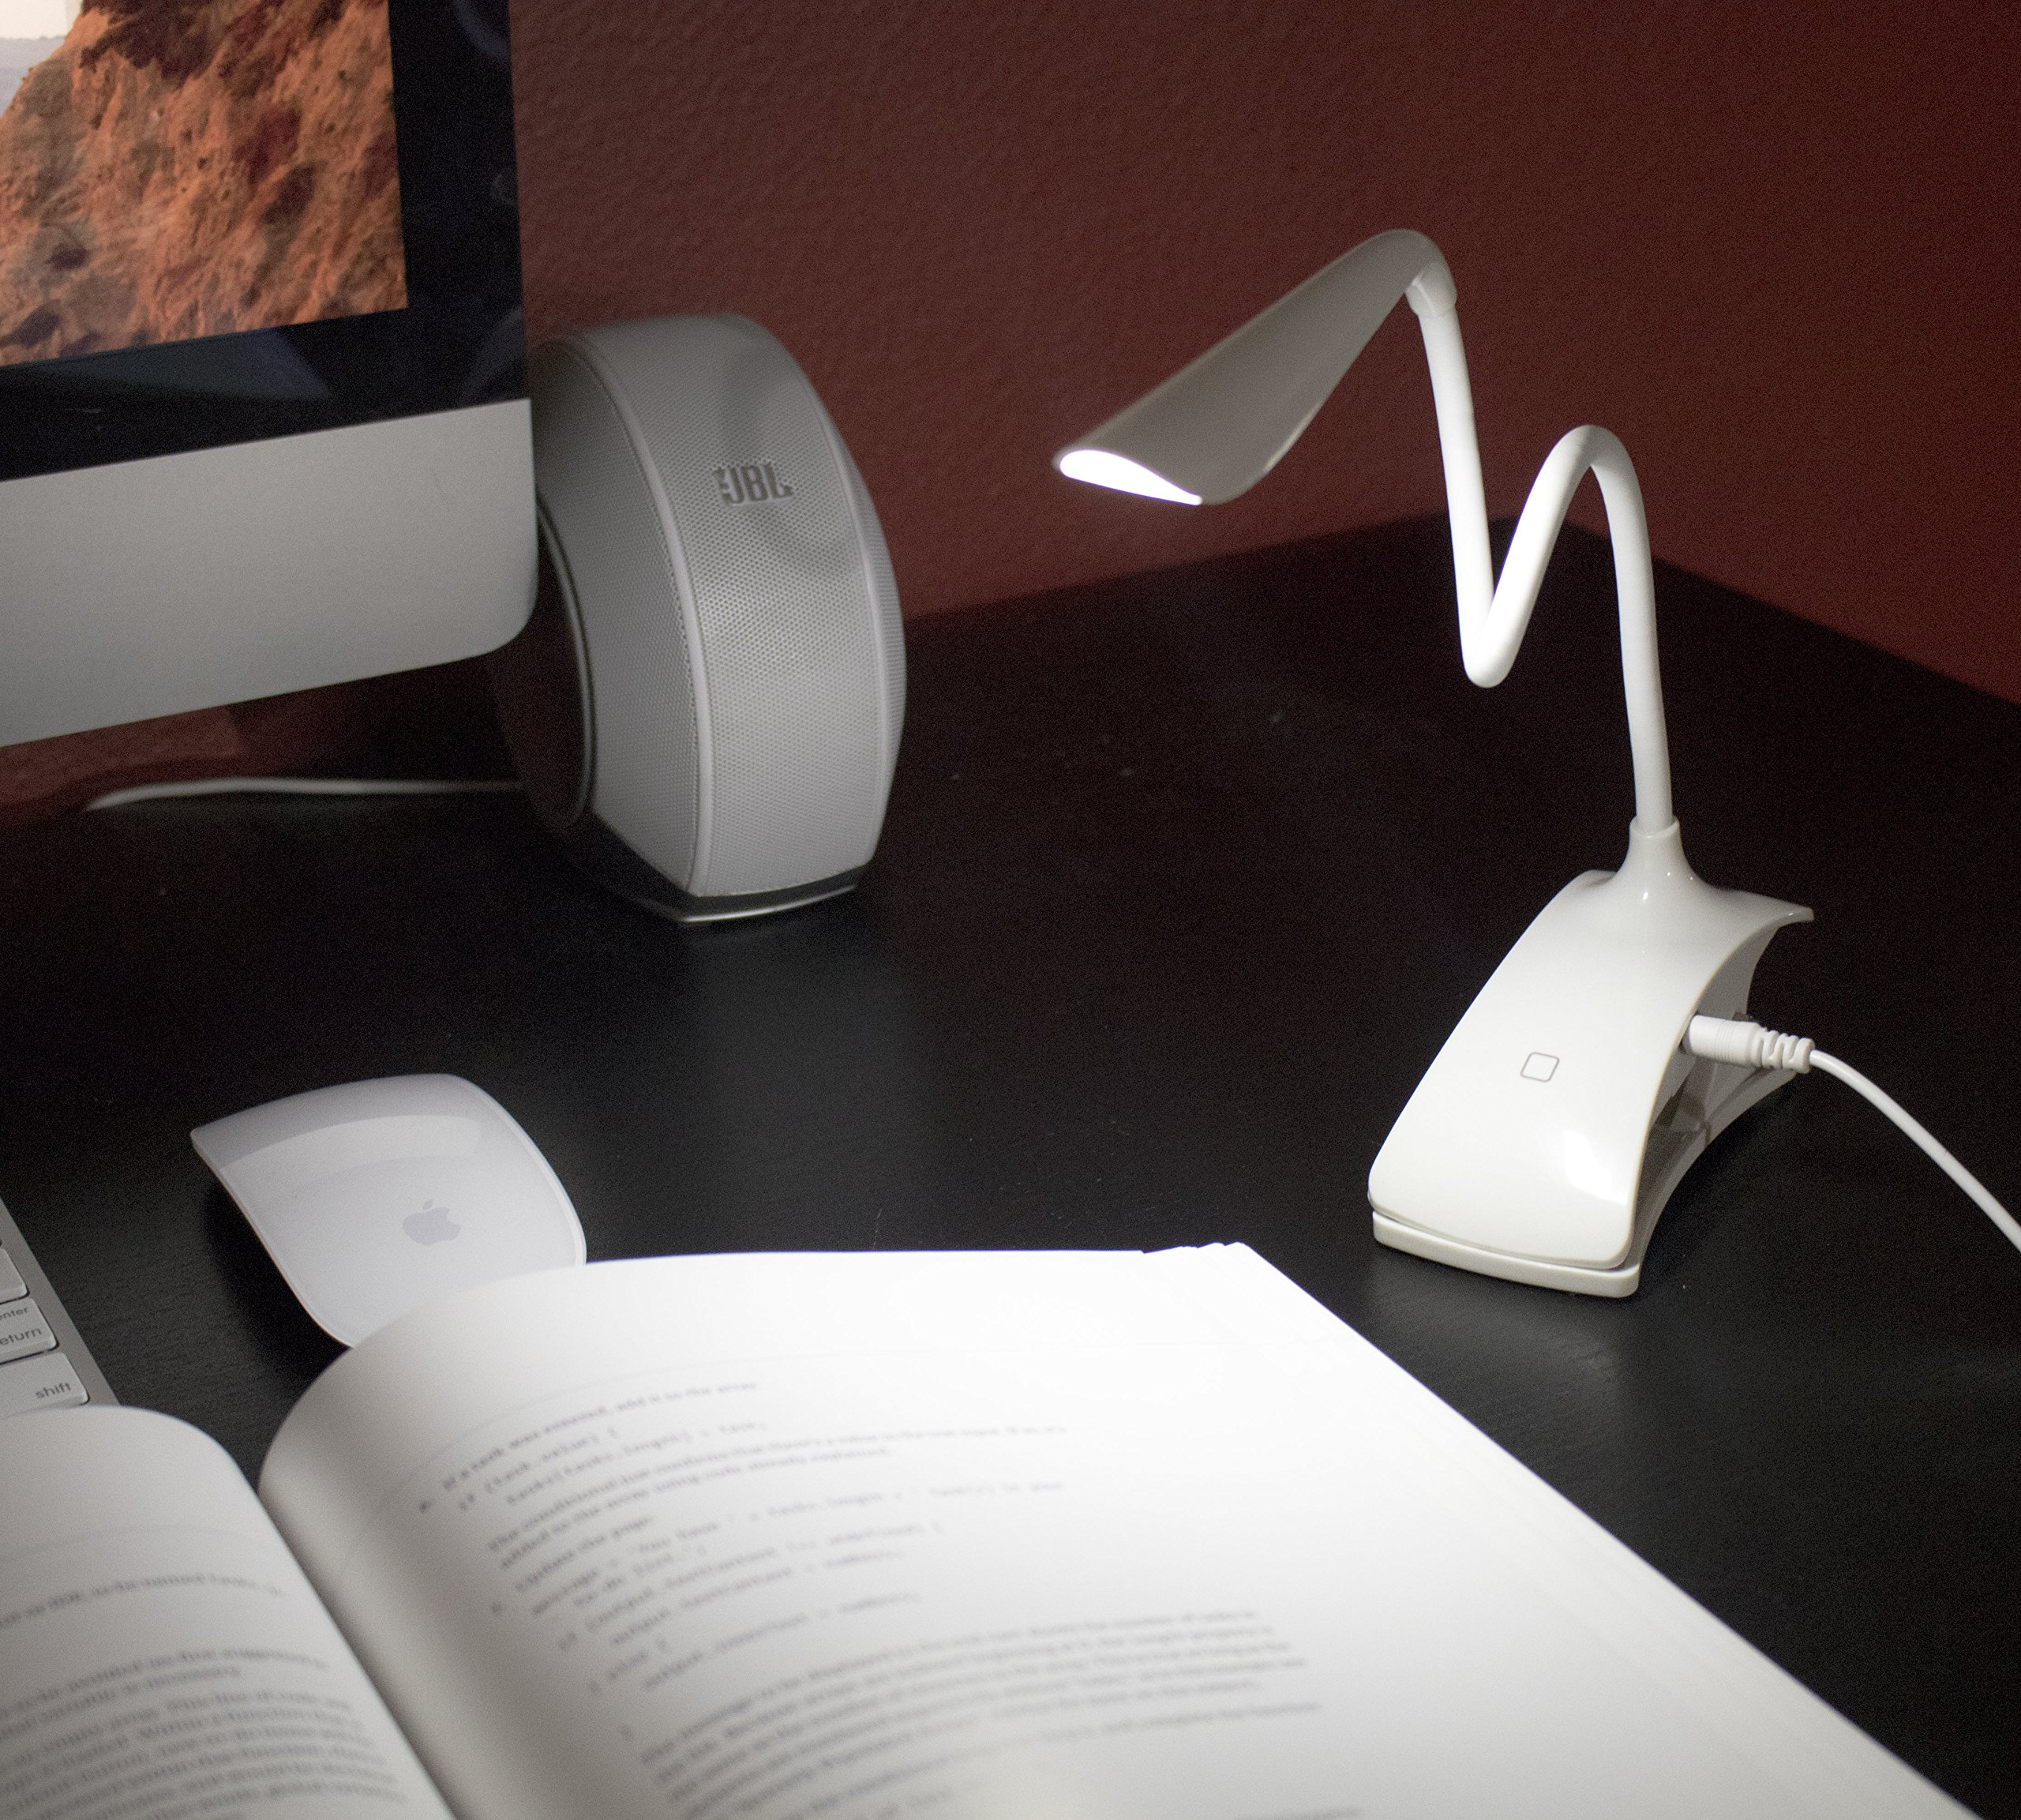 Clip-on Book Light Reading Lamp, Portable Table Light, Adjustable Led Clip Light, Anti Glare Reading Light, USB Rechargeable Computer Desk Lamp, White Daylight Bed Light. by Tesoro Wholesale™ (Image #4)